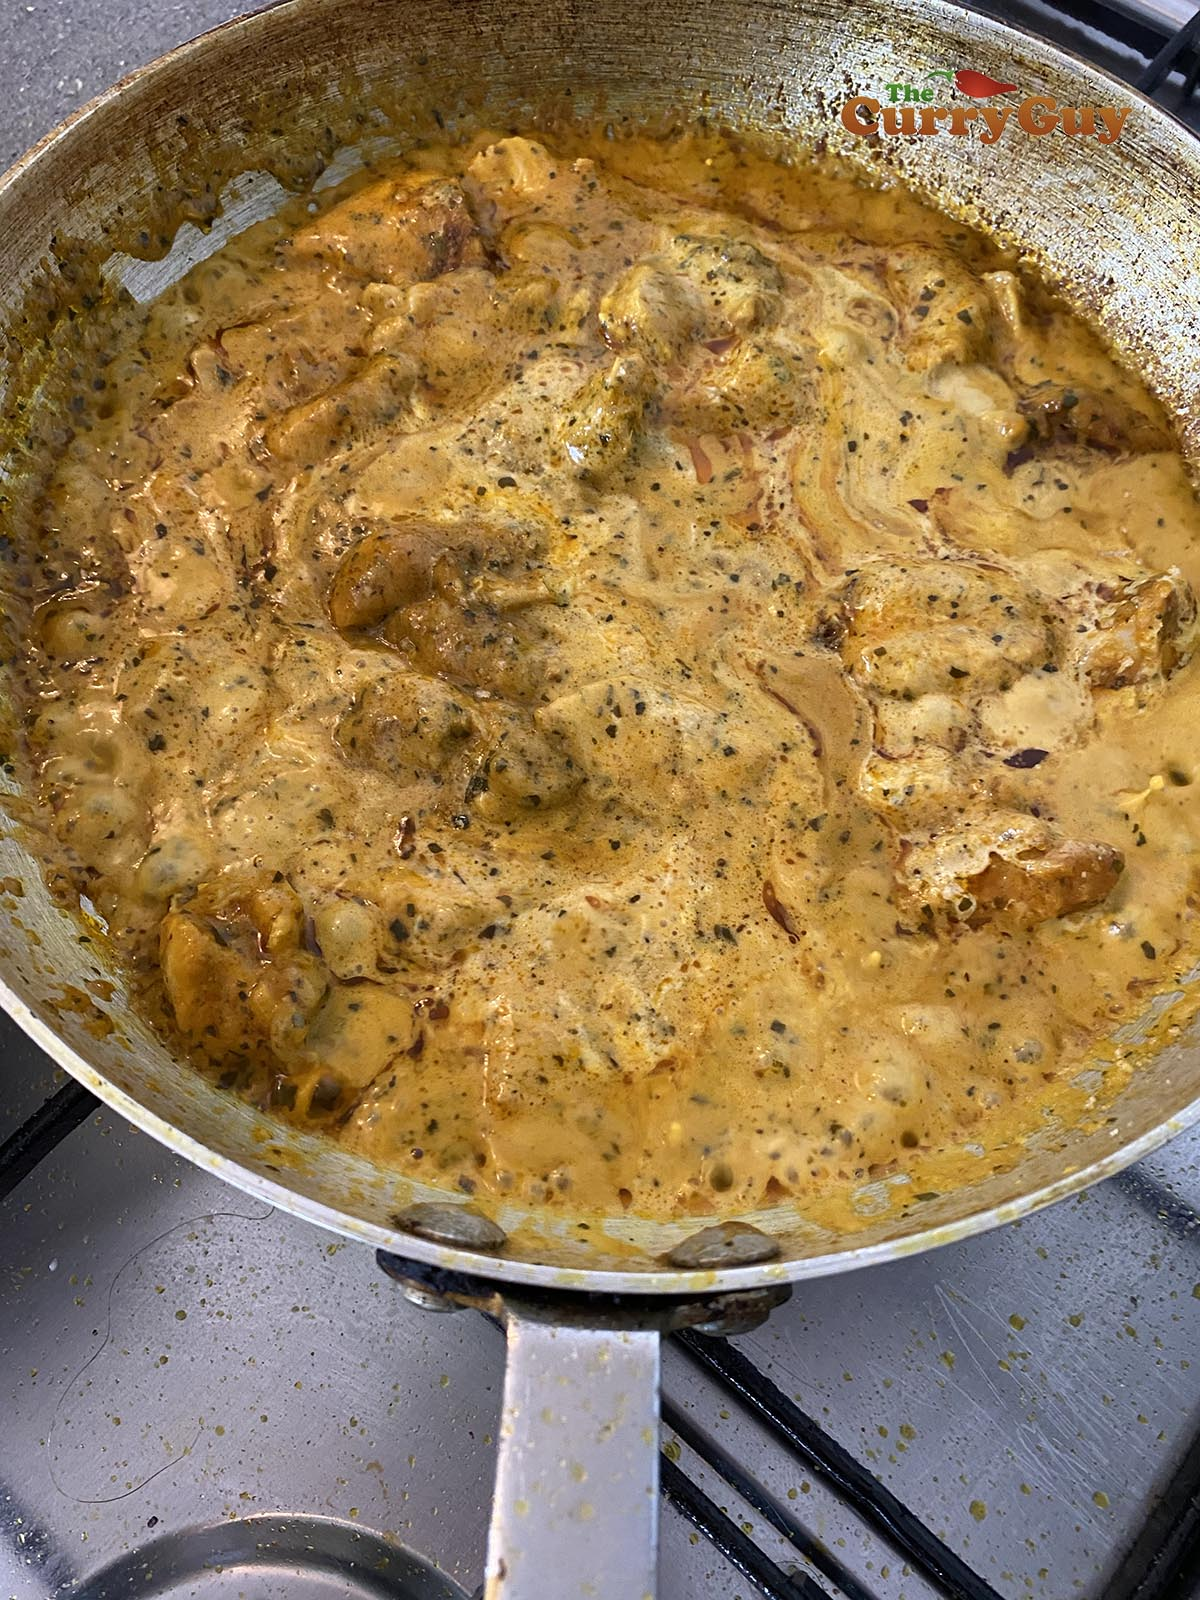 Chicken chasni curry without food colouring